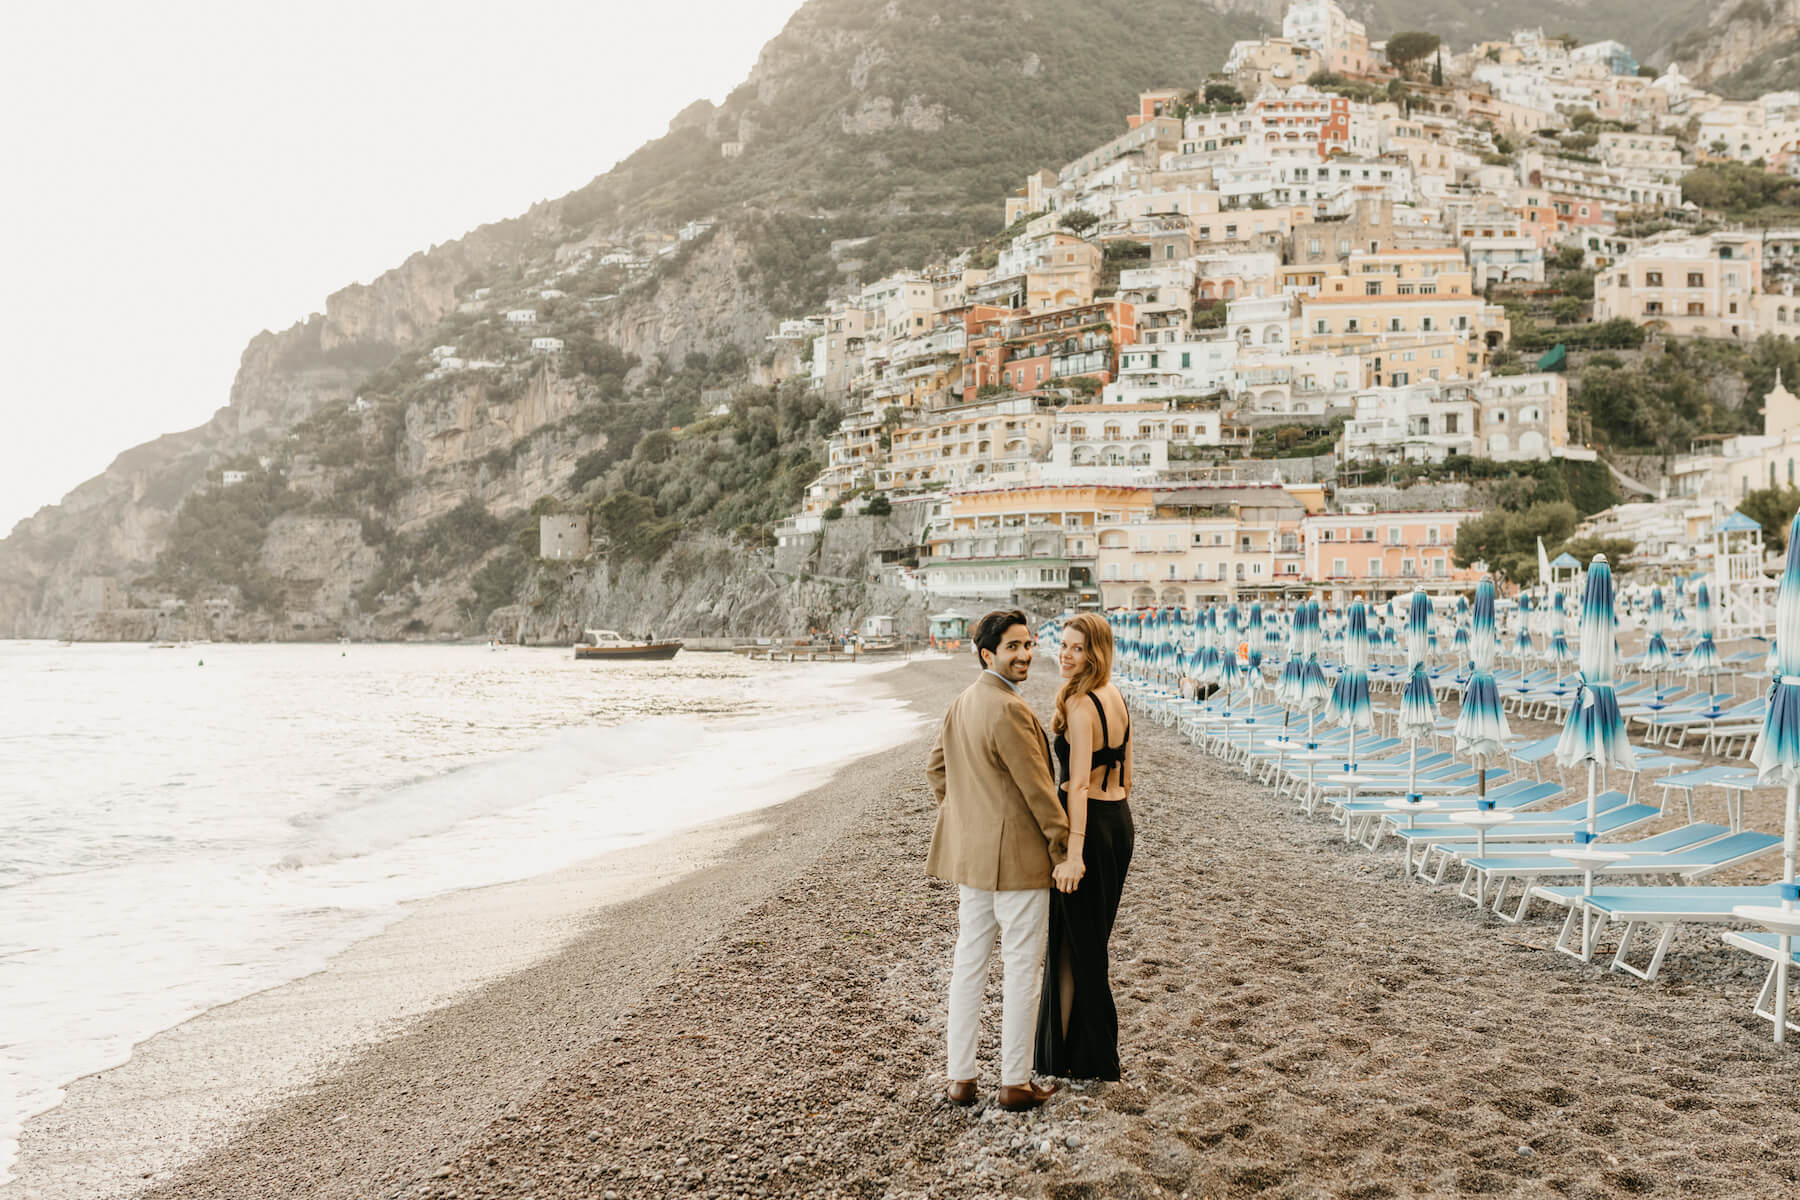 the man and woman are walking on the beach in Positano after the proposal moment